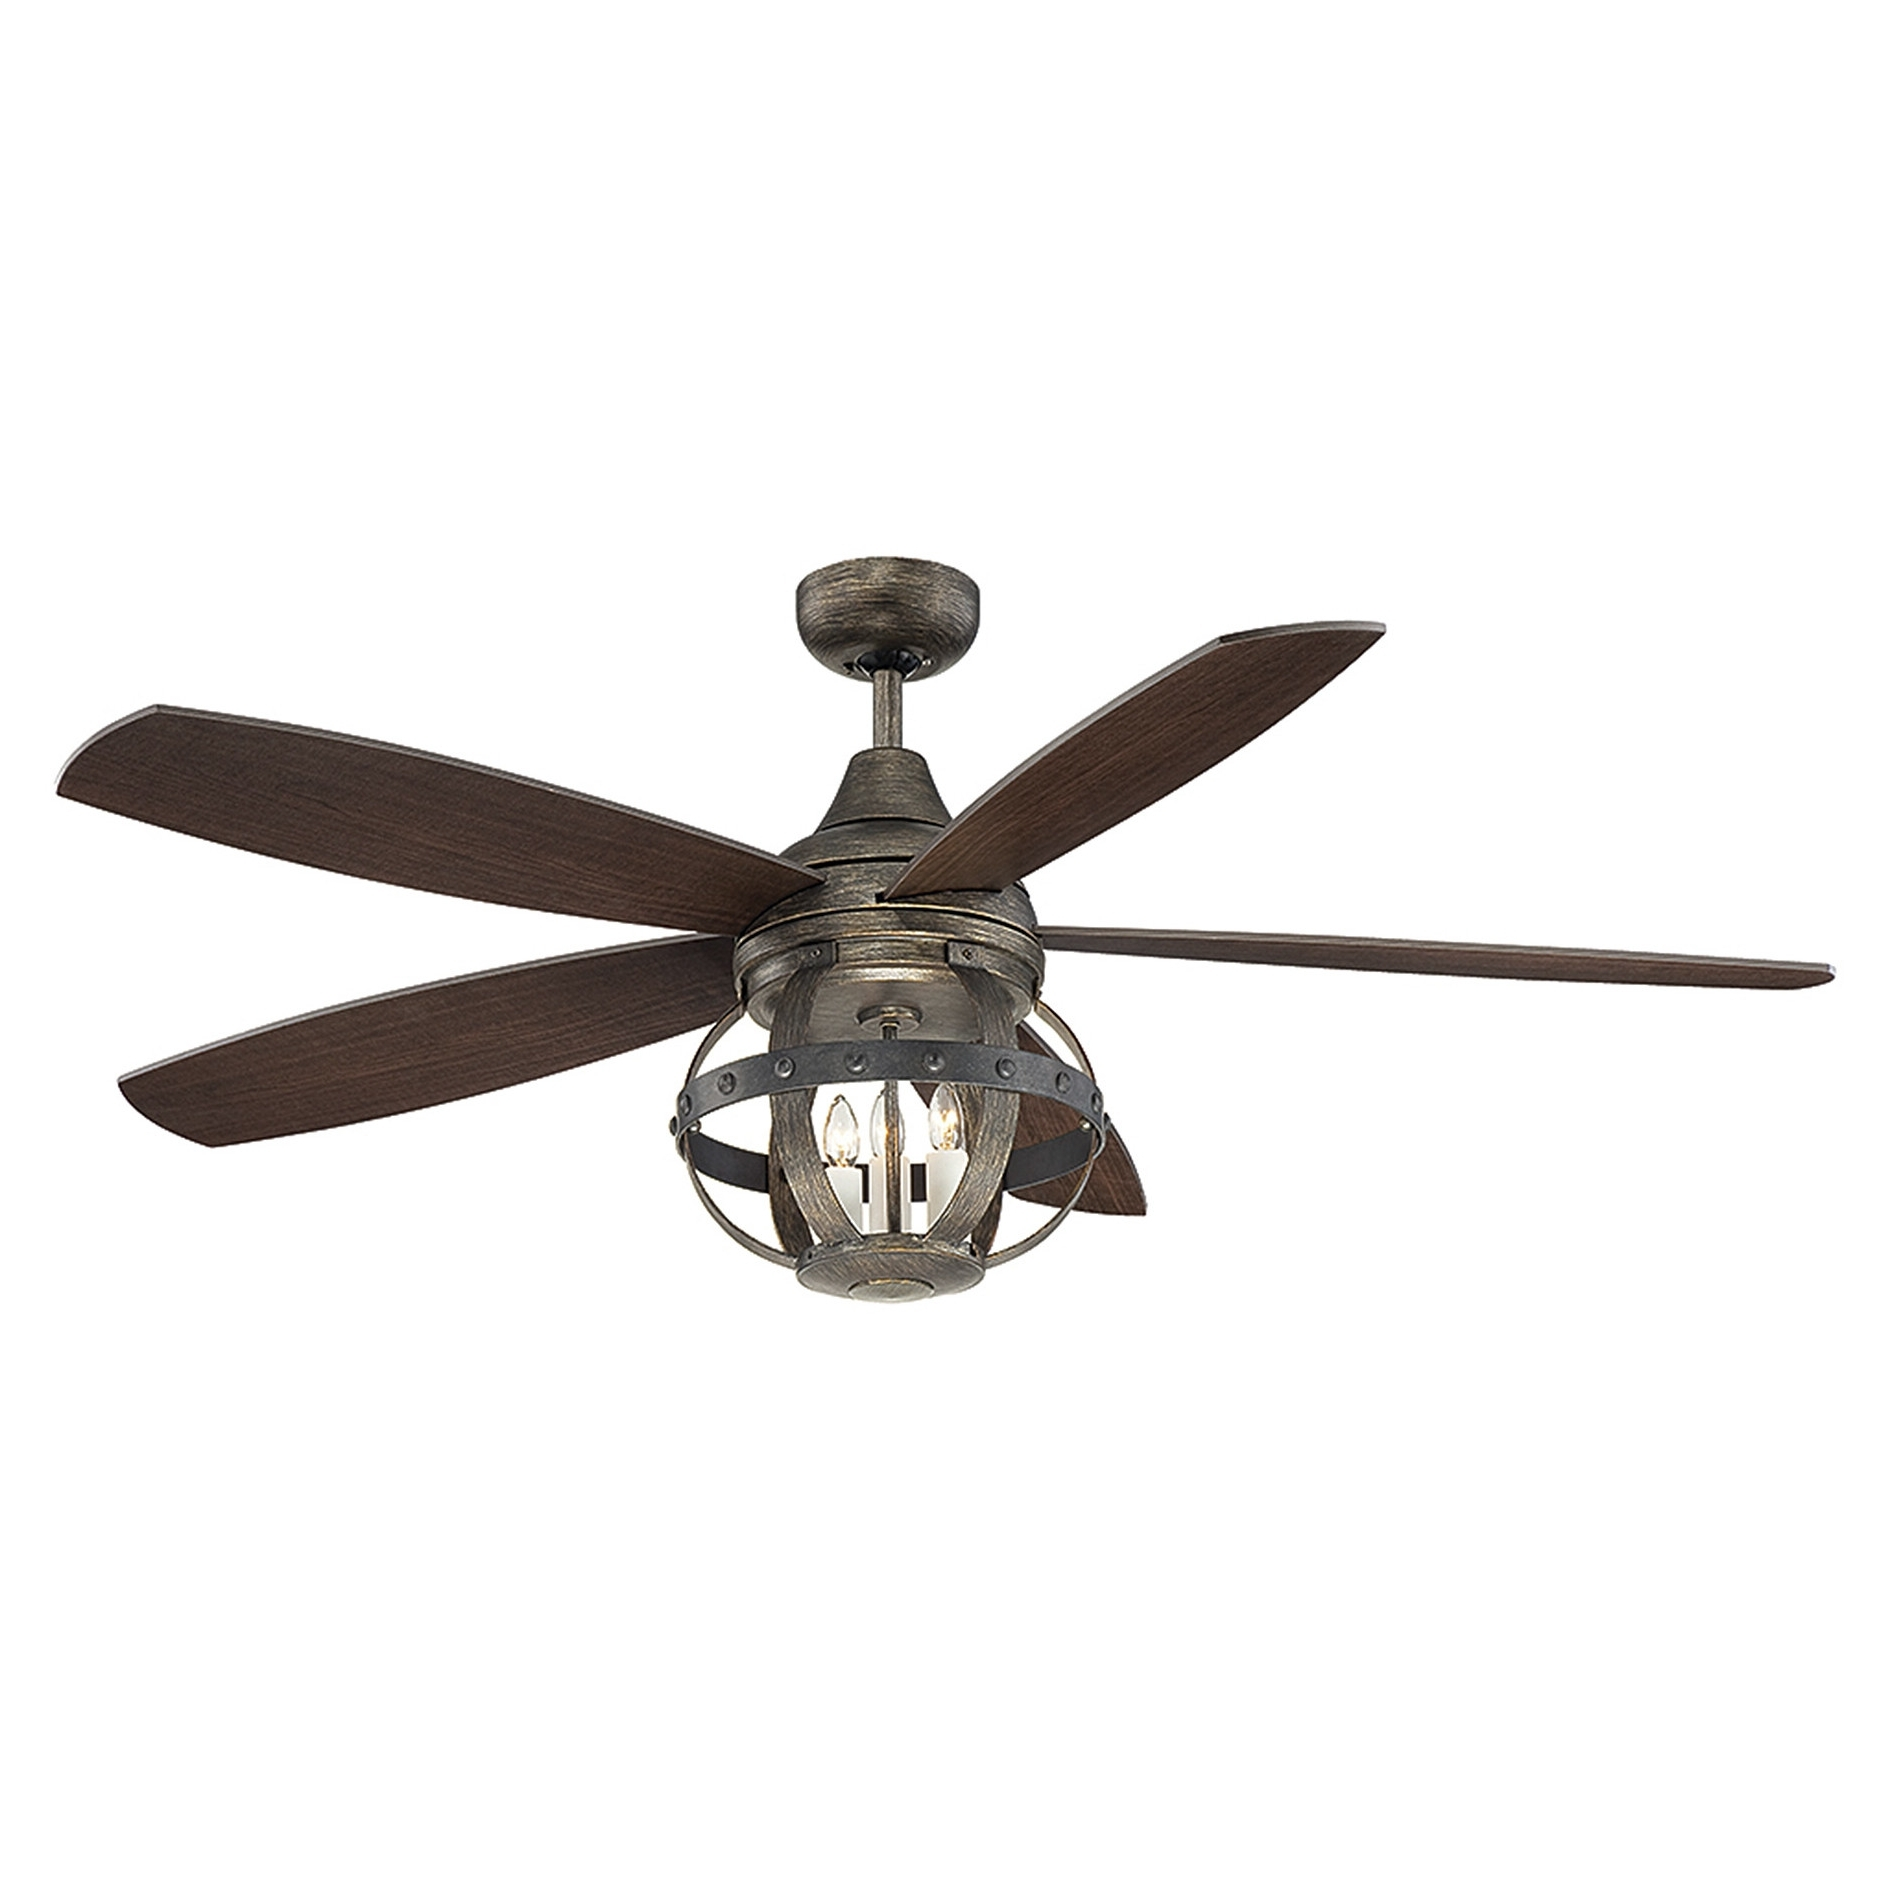 Outdoor Ceiling Fans With Lights At Home Depot Inside Preferred Ceiling: Amazing 60 Inch Outdoor Ceiling Fan 60 Inch Ceiling Fans (View 20 of 20)